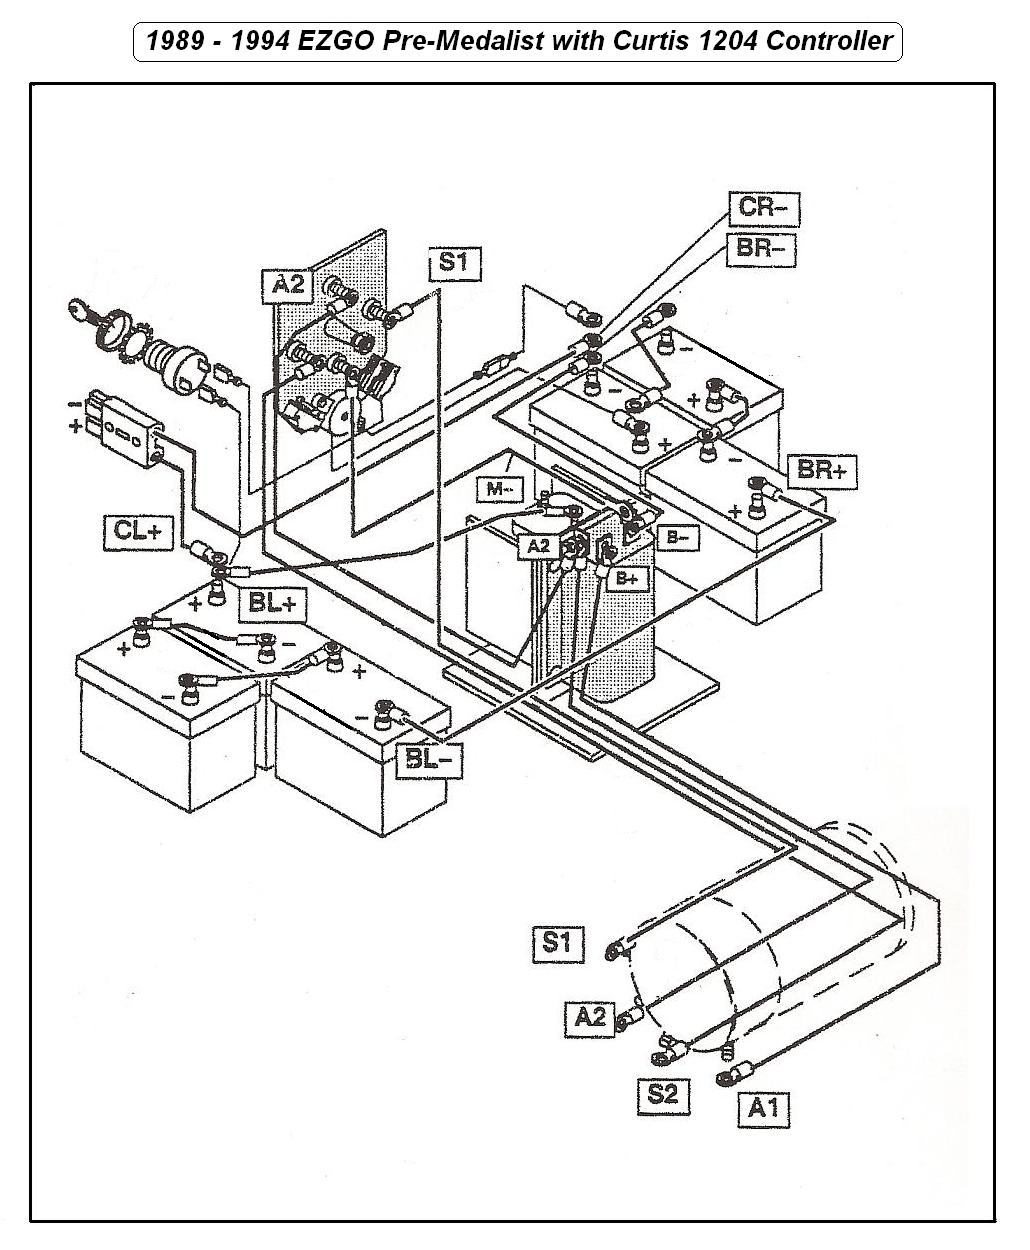 Ez Go Golf Cart Parts Diagram | Automotive Parts Diagram ...